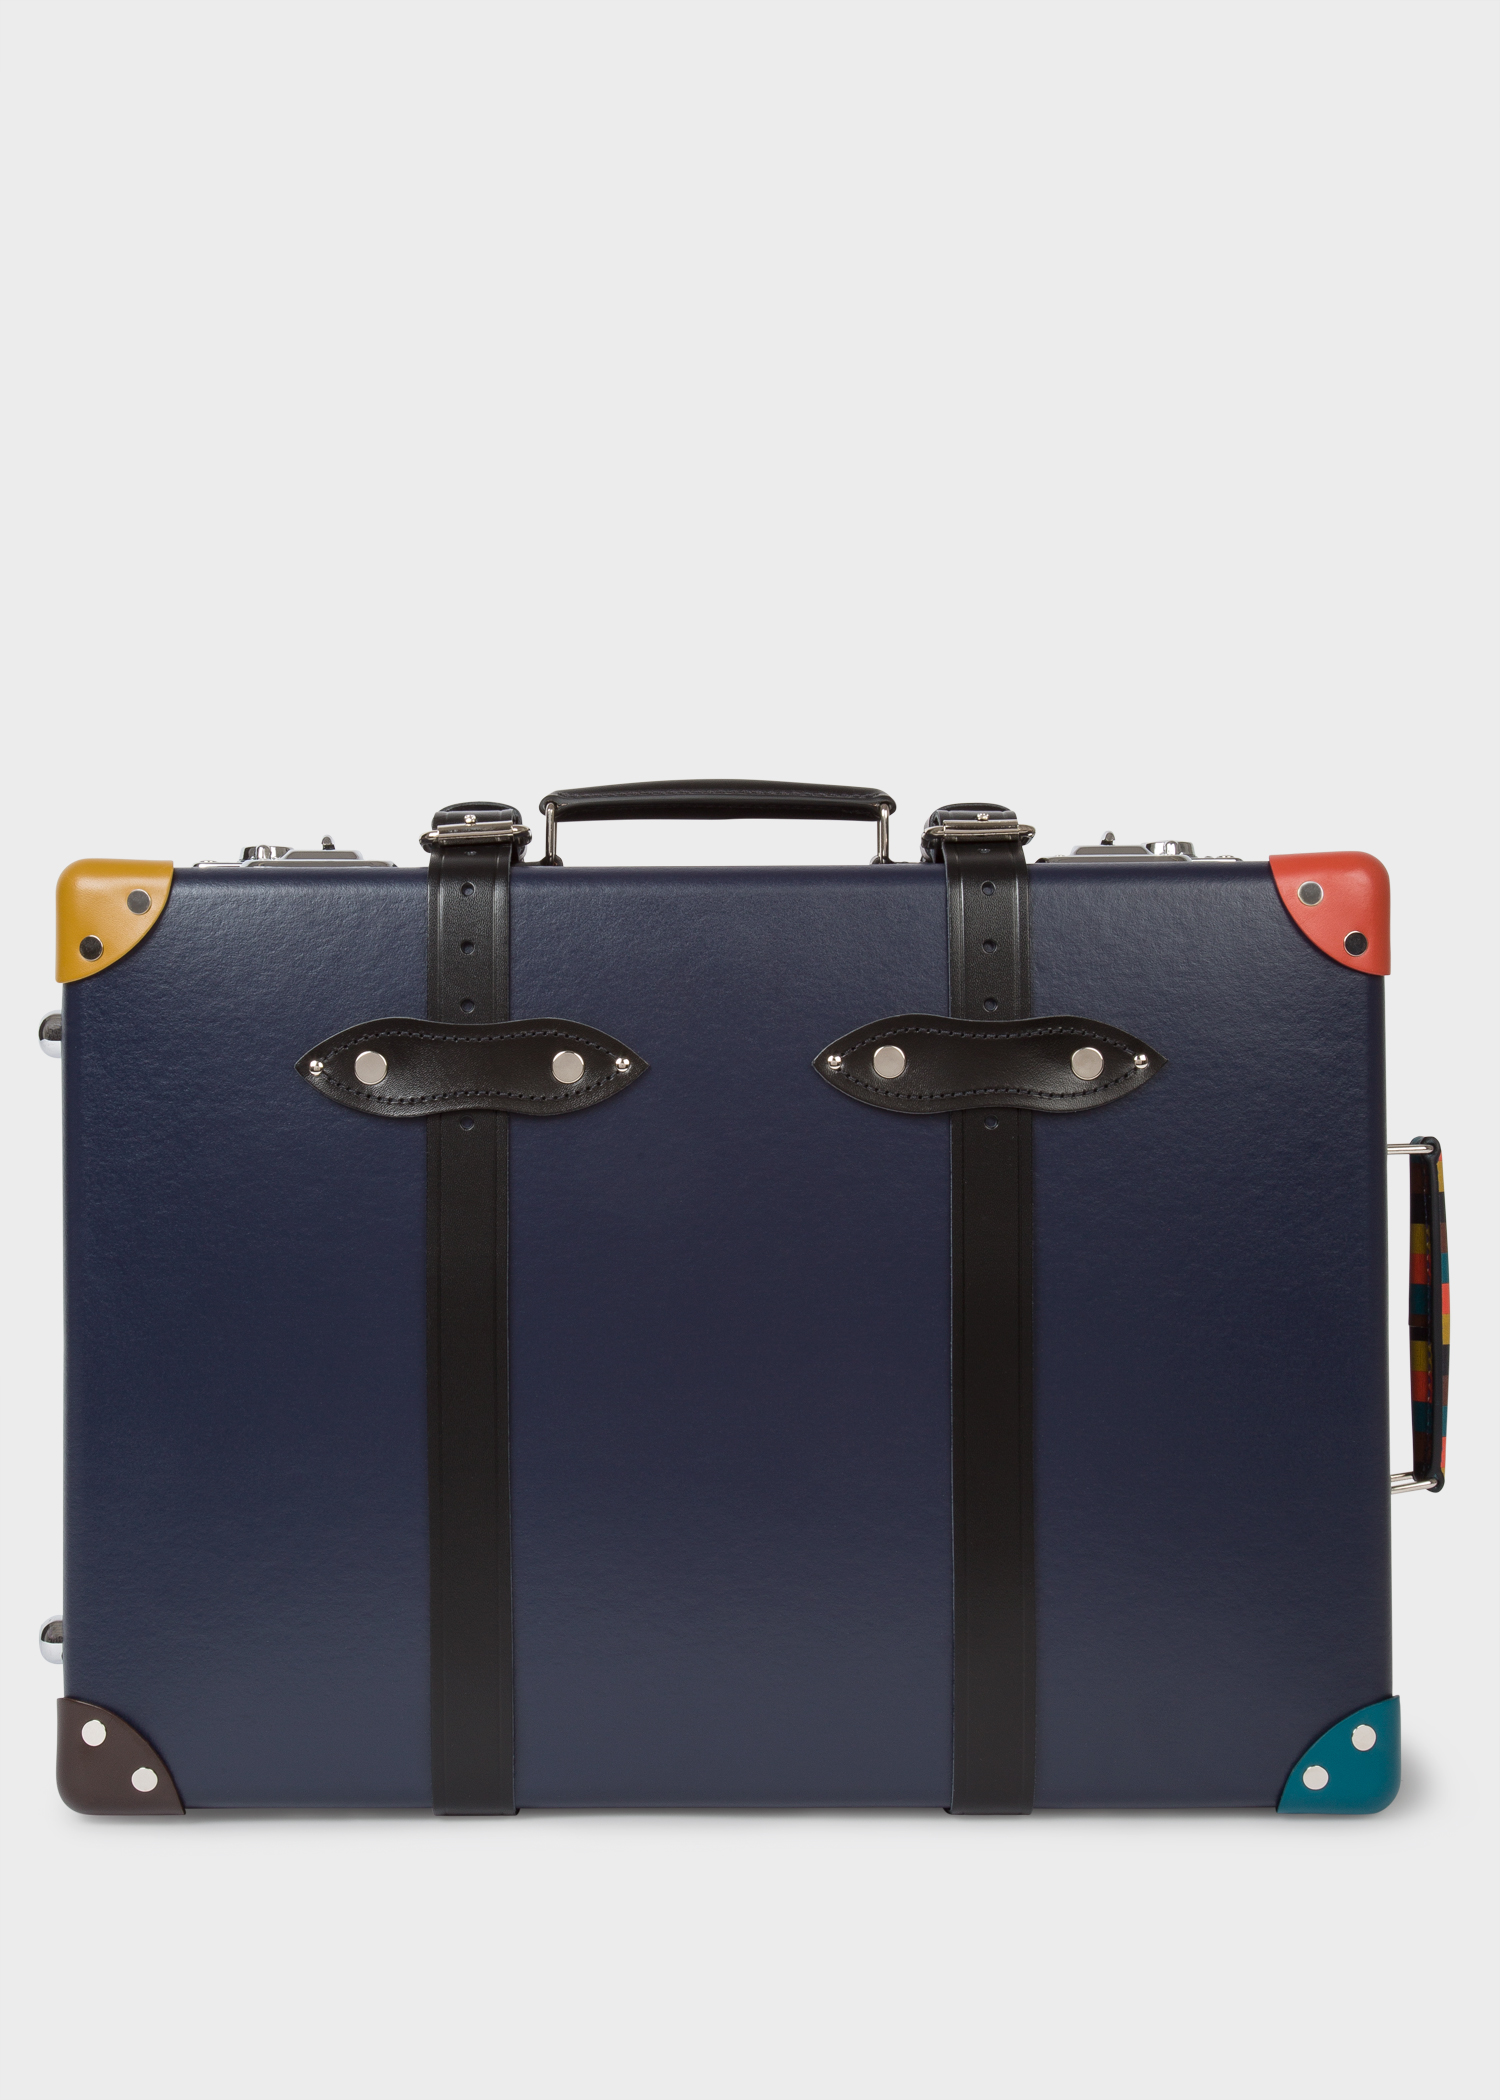 Globe Trotter X Paul Smith Trolley Case Signed Limited Edition